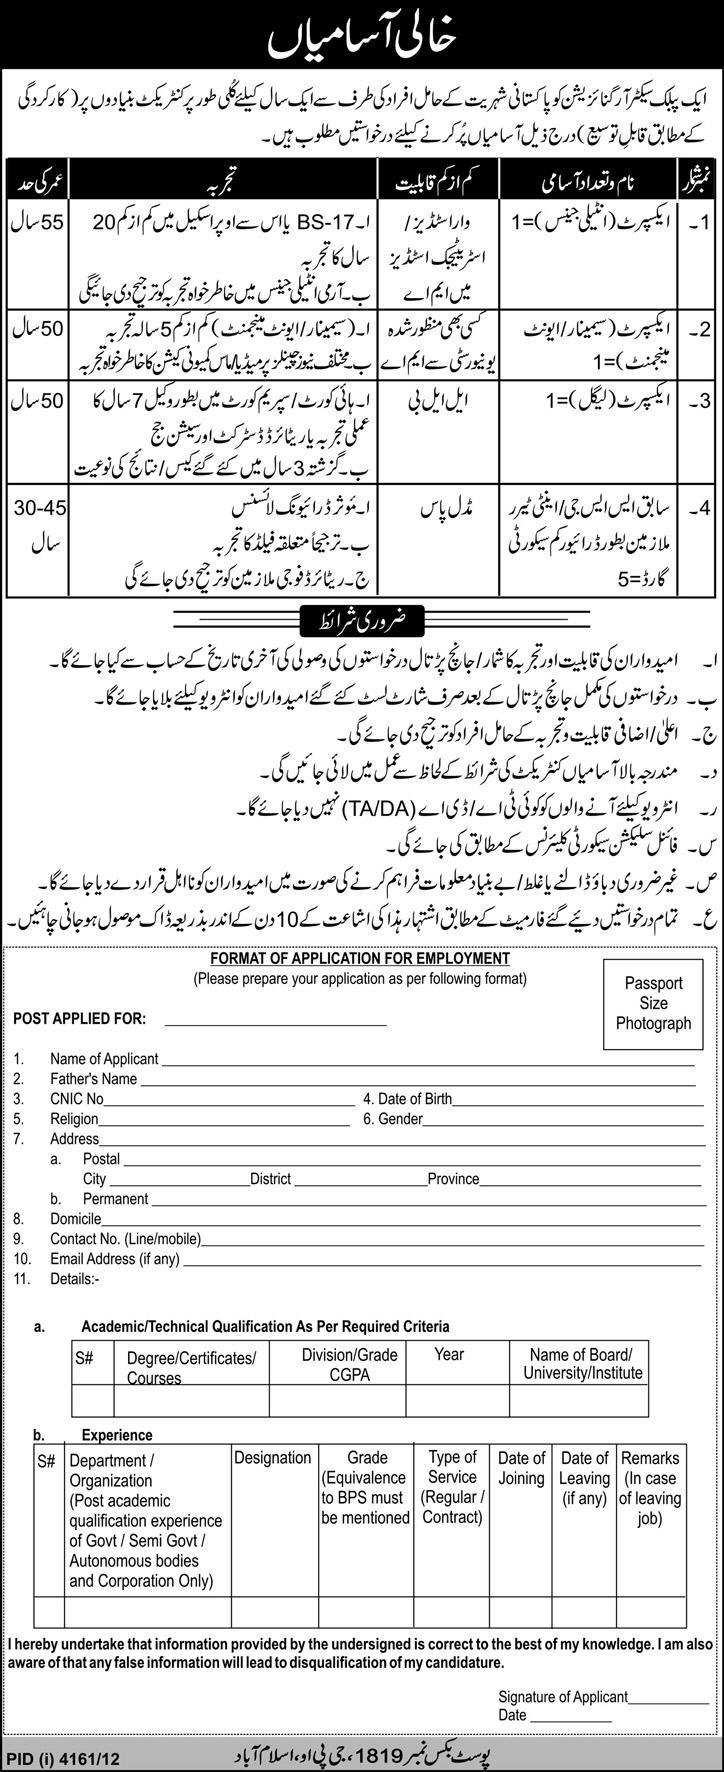 Po box 1819 gpo islamabad jobs 2013 application form - Dollar general careers express hiring ...